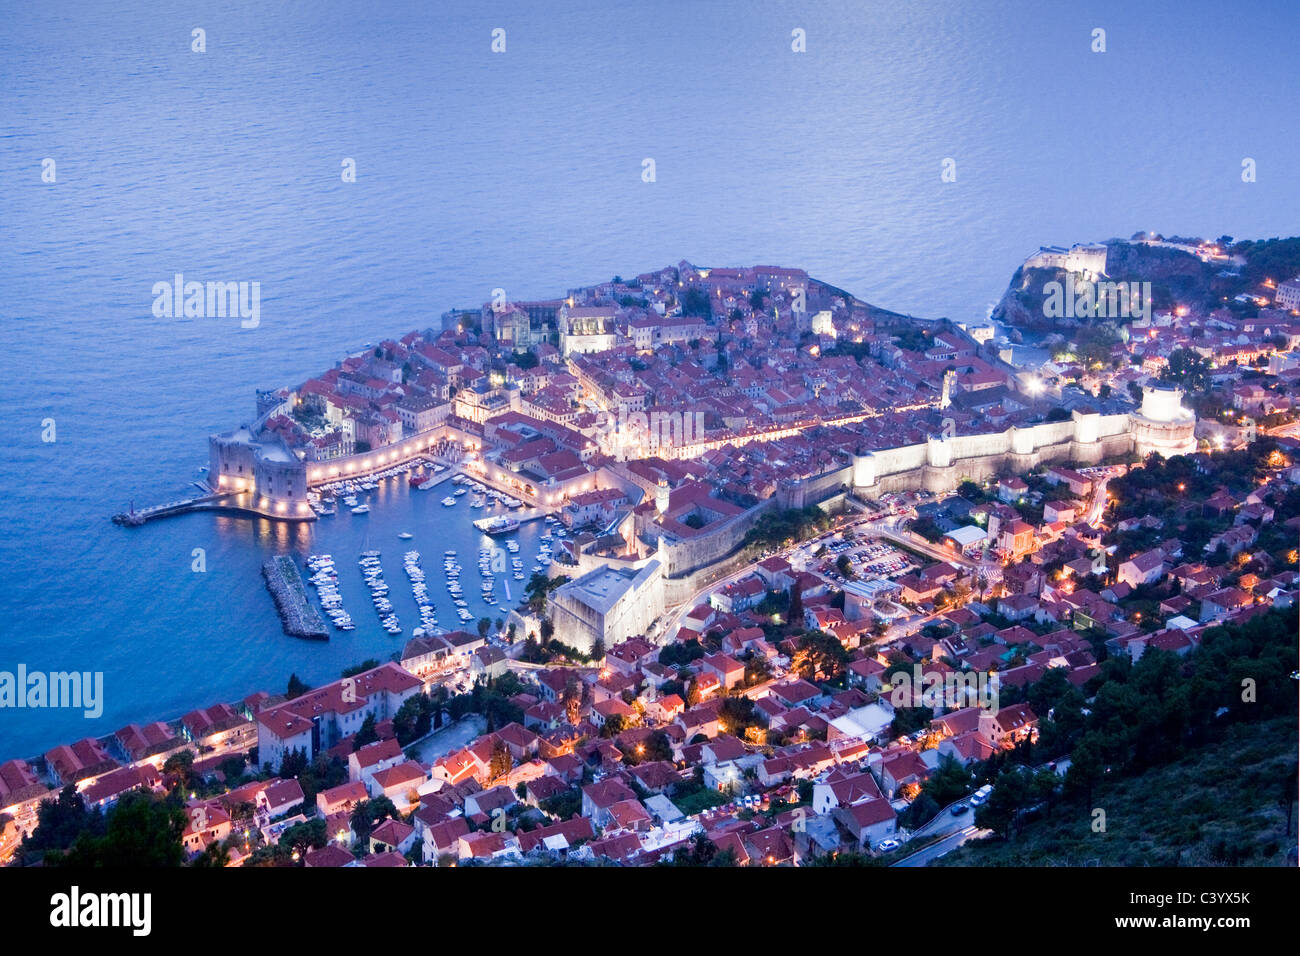 Croatia, Europe, Dubrovnik, Adriatic, sea, Old Town, world cultural heritage, in, evening, harbour, port, - Stock Image